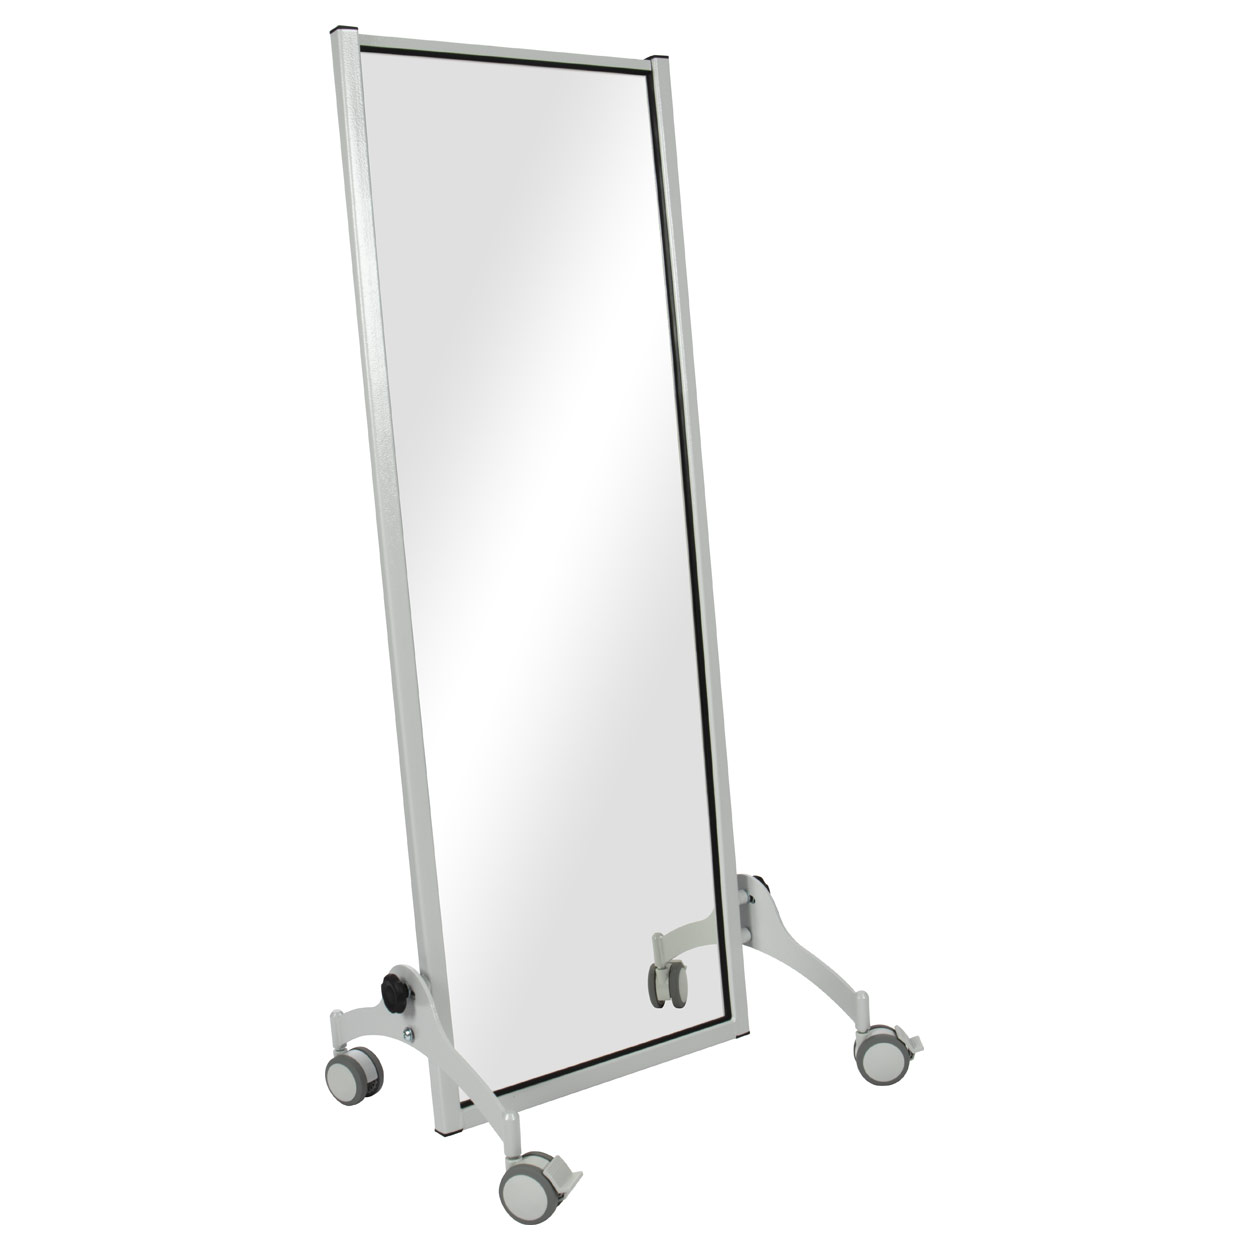 Therapy Mirror Exclusive Lxwxh 75x65x155 Cm Buy Online Sport Tec